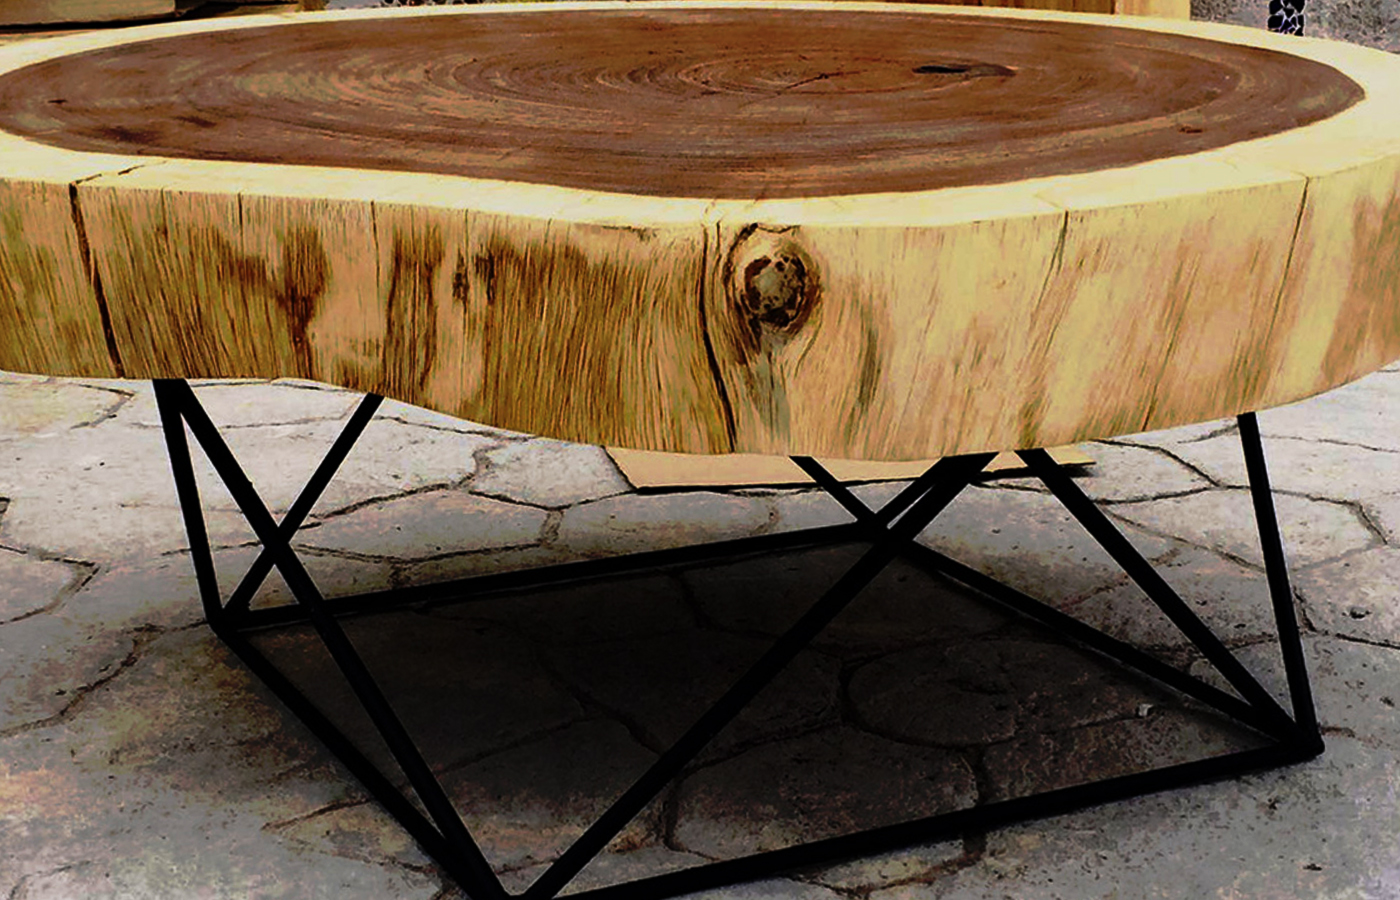 Terrific Parota Wood Coffee Tables Custom Made In Mexico Lamtechconsult Wood Chair Design Ideas Lamtechconsultcom